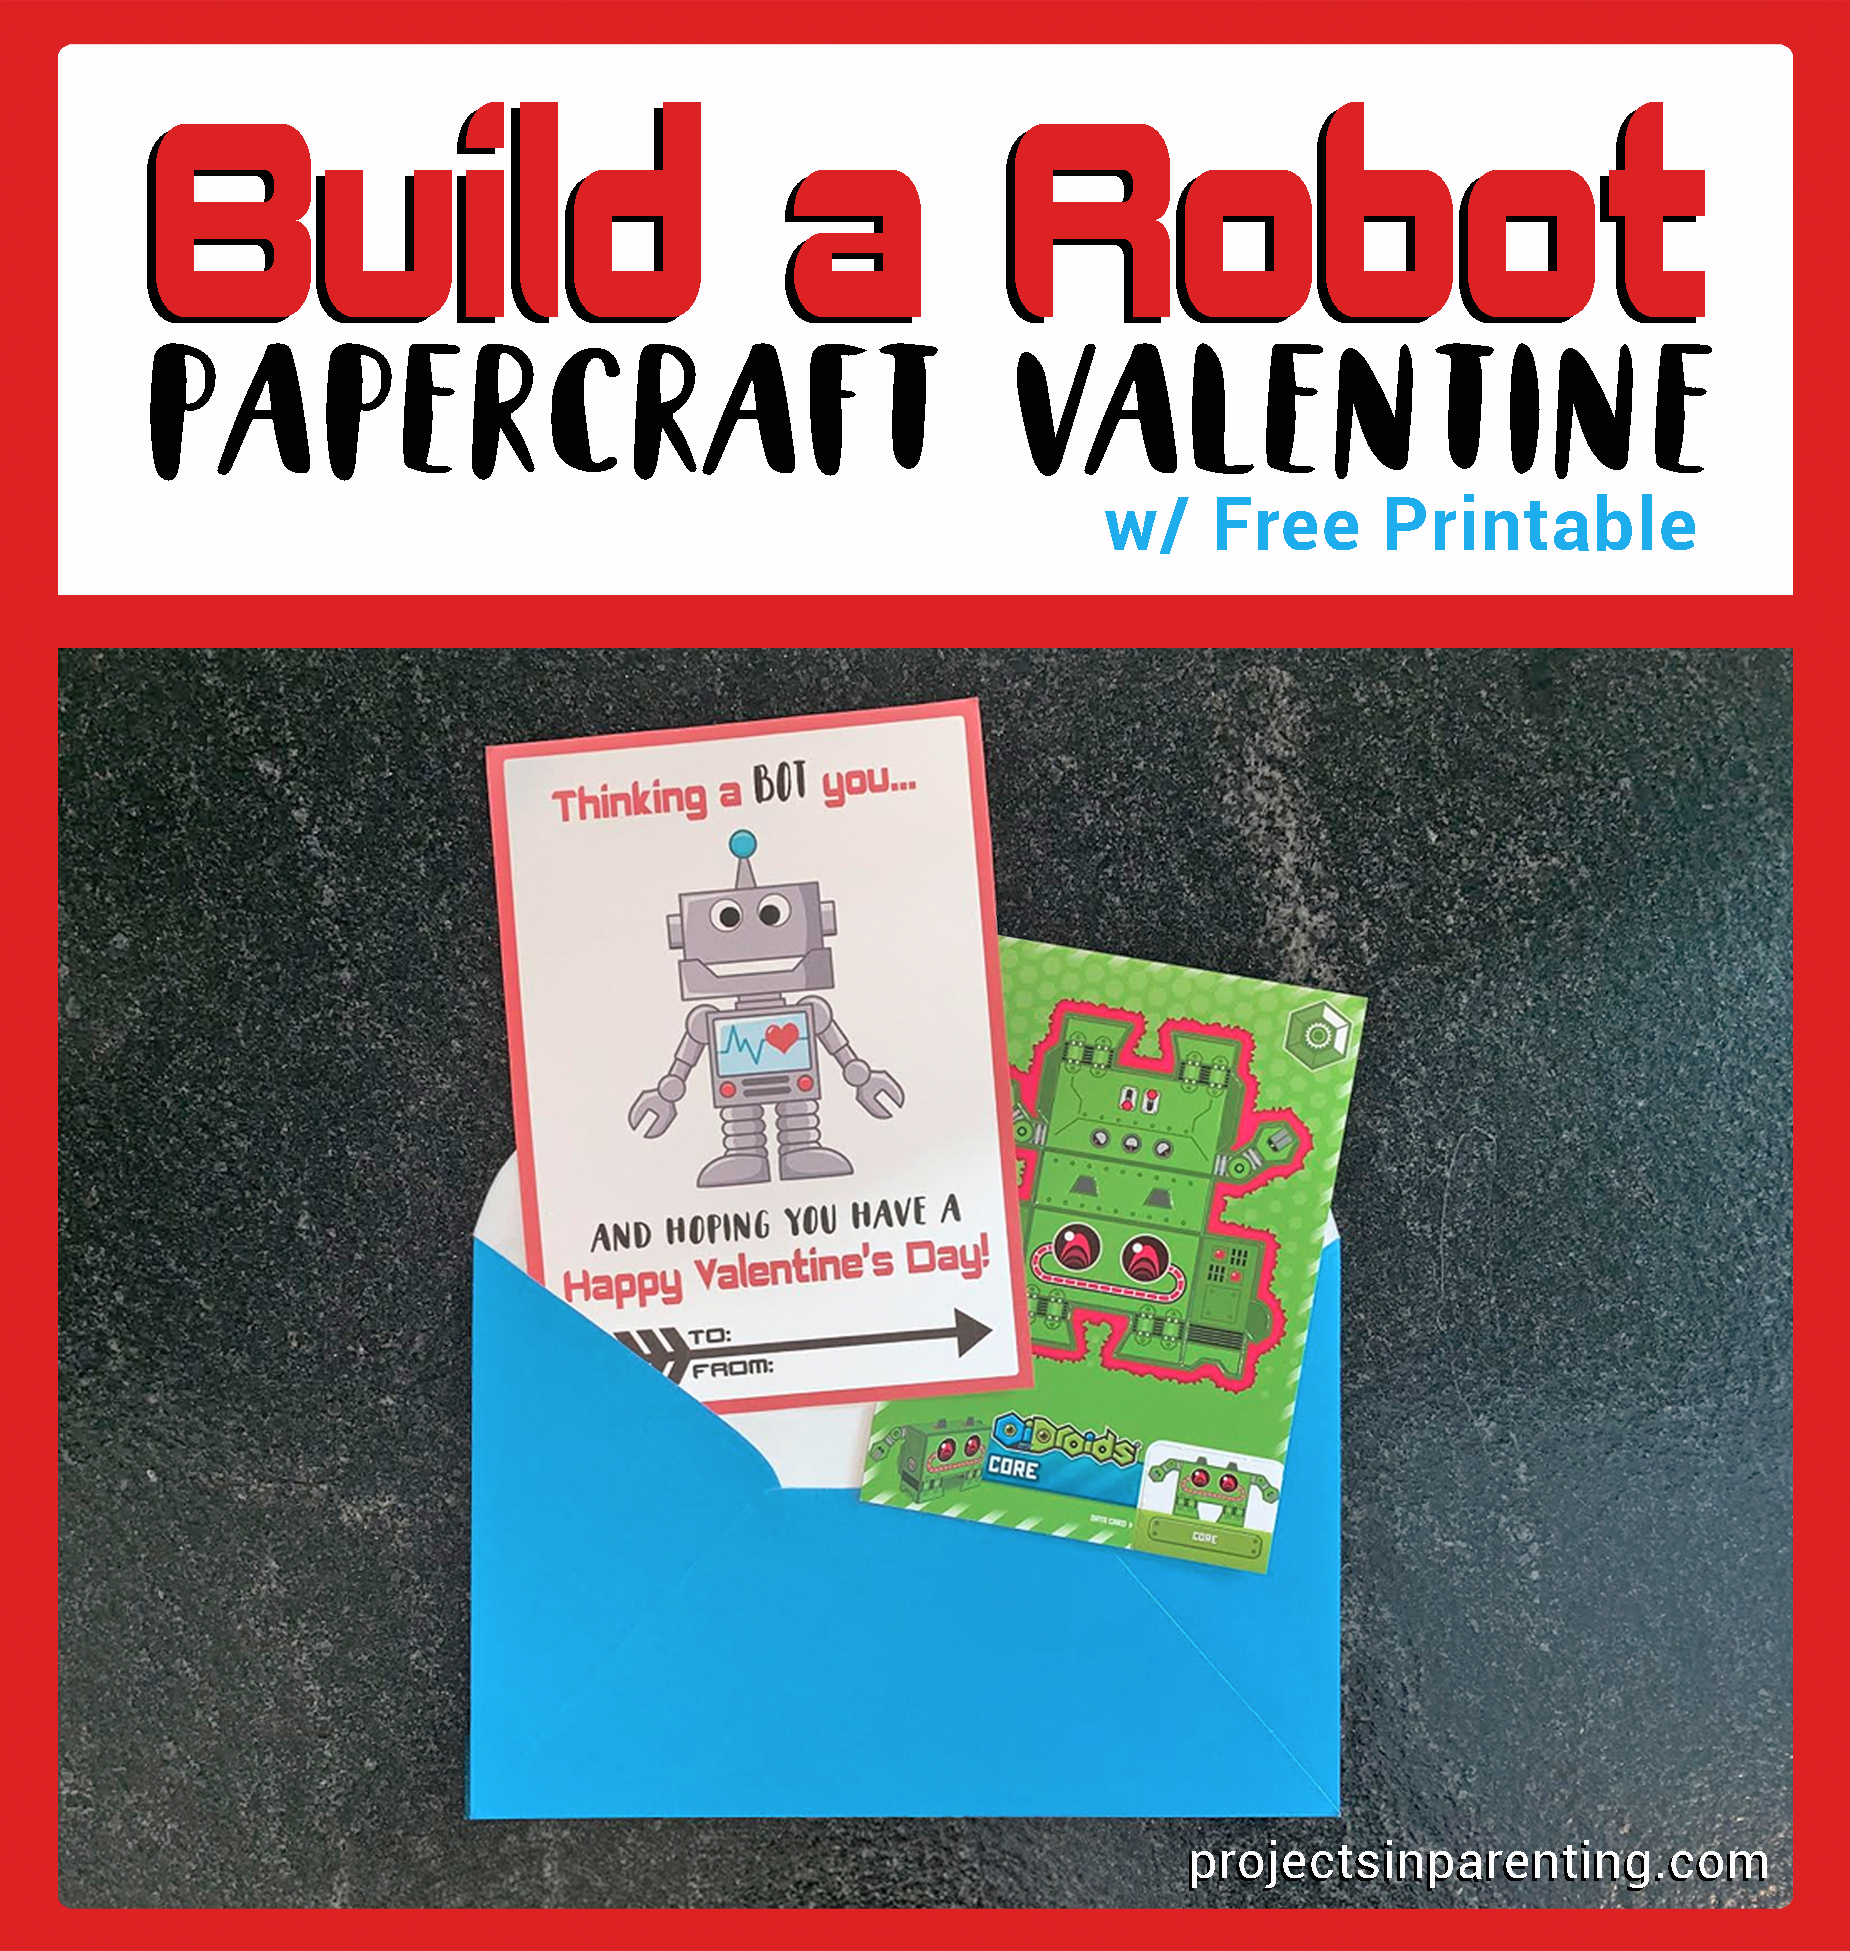 DIY Build a Robot Papercraft Valentine with Free Printable - projectsinparenting.com